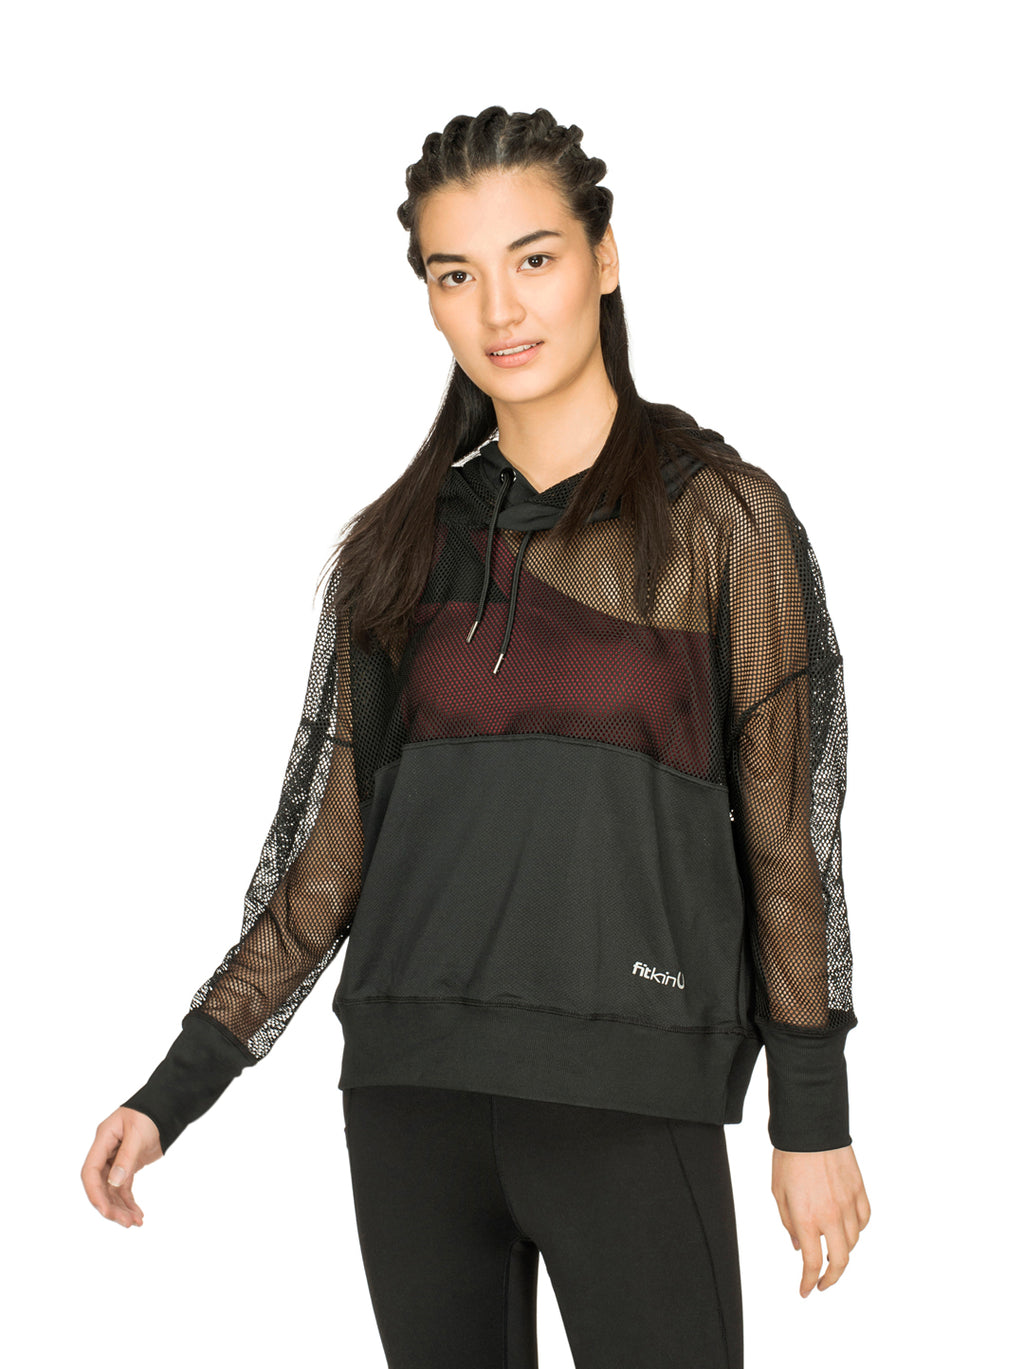 Fitkin Athleisure Relaxed Fit Hoodie Top